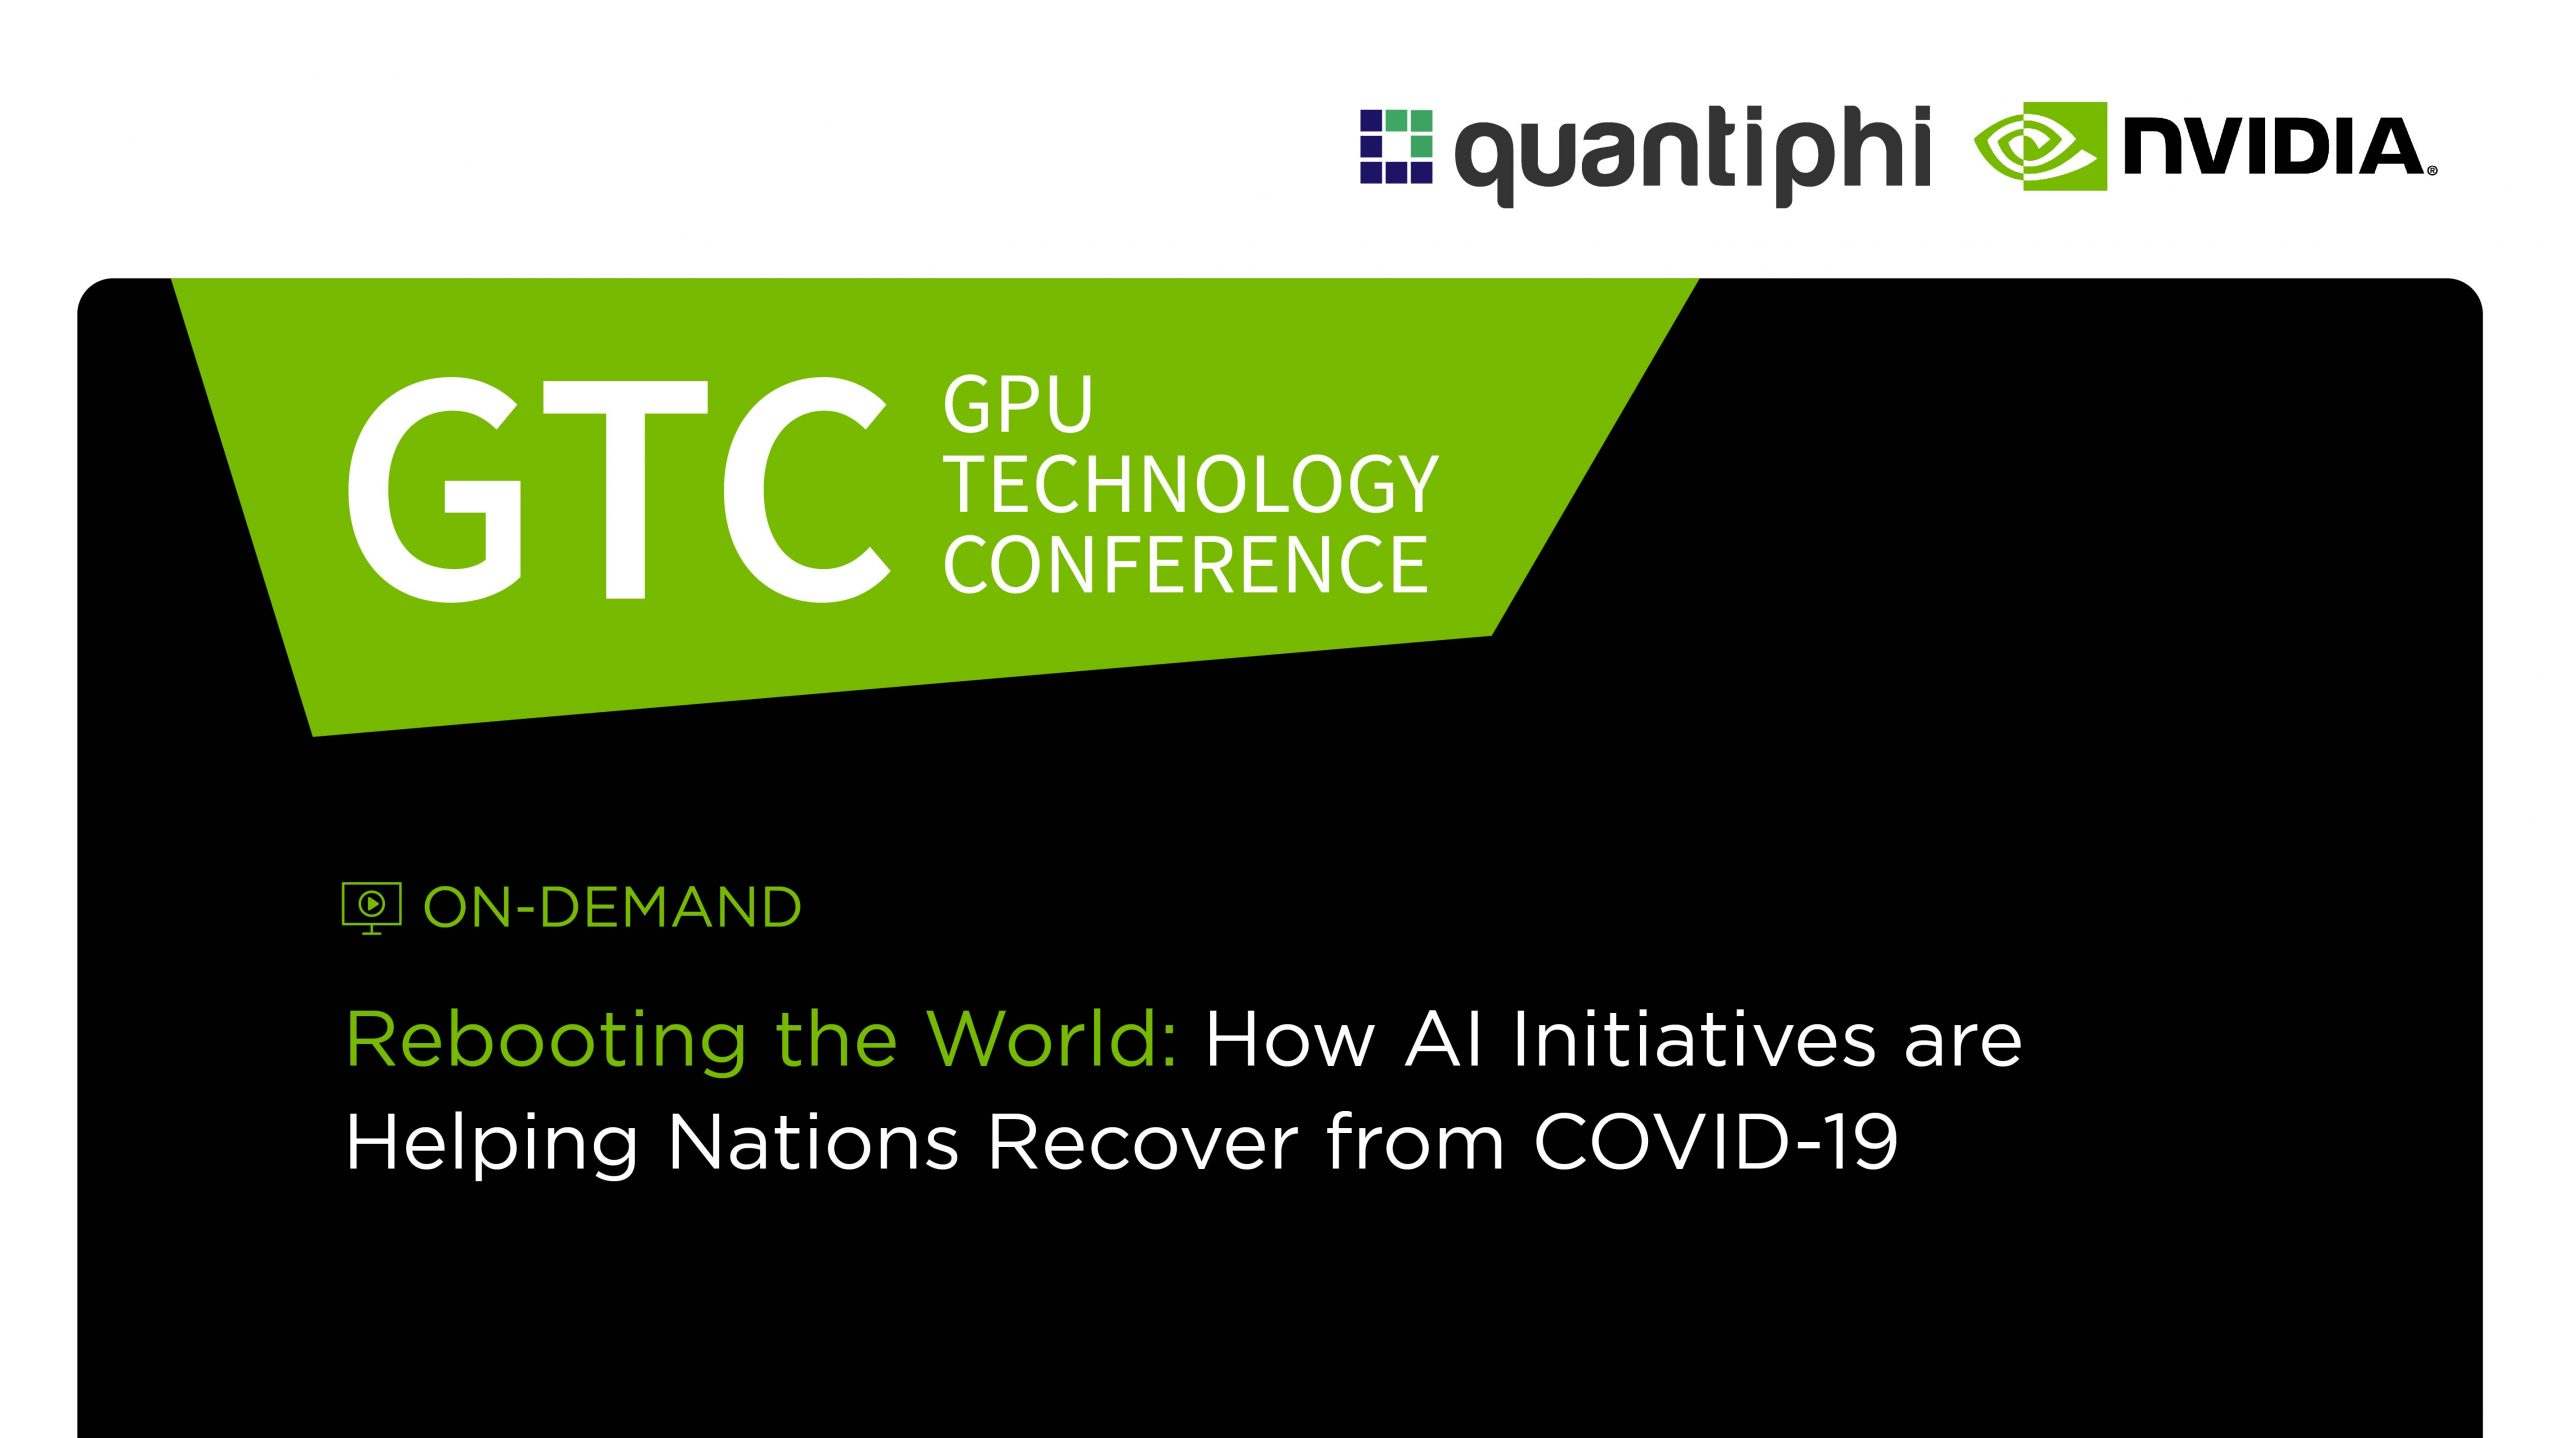 Rebooting the World: How AI Initiatives are Helping Nations Recover from COVID-19